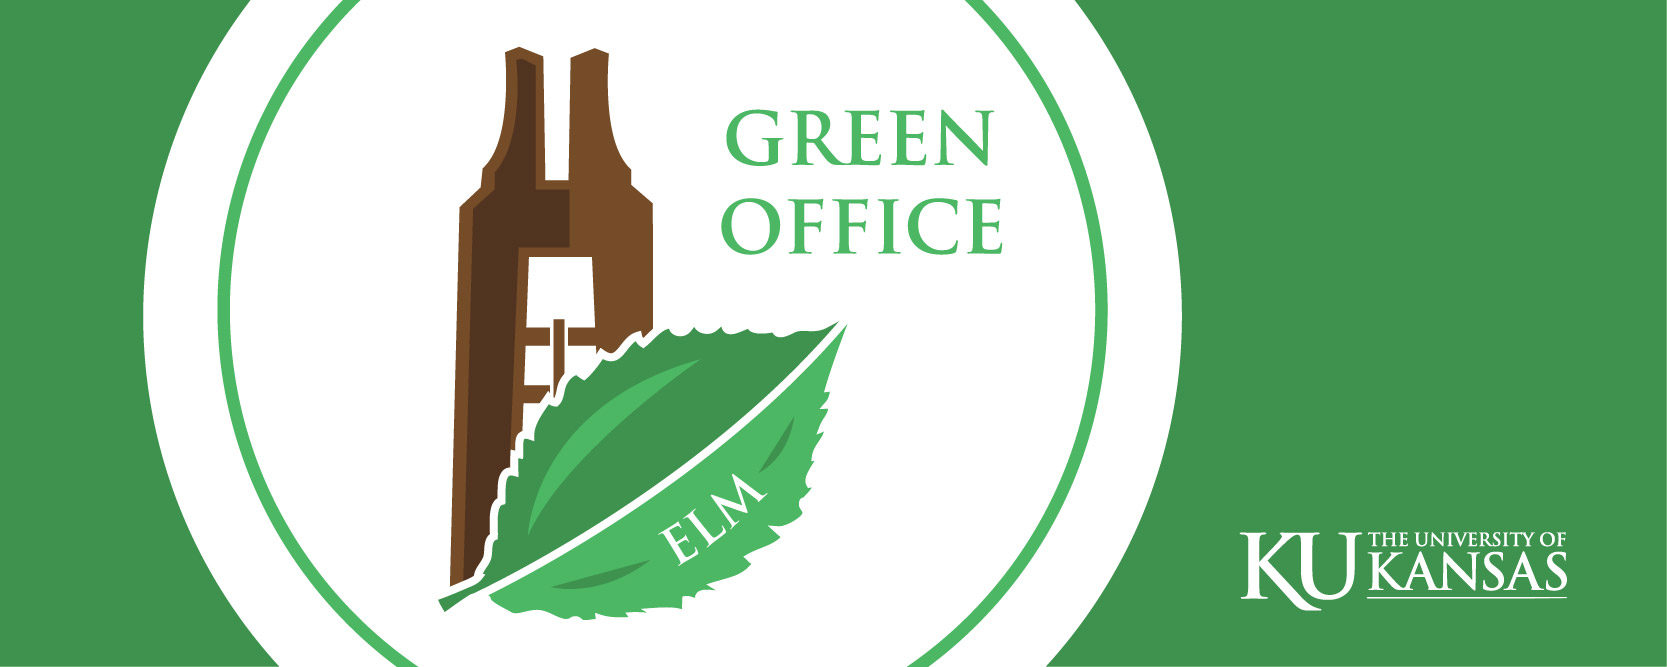 Green Office Emblem